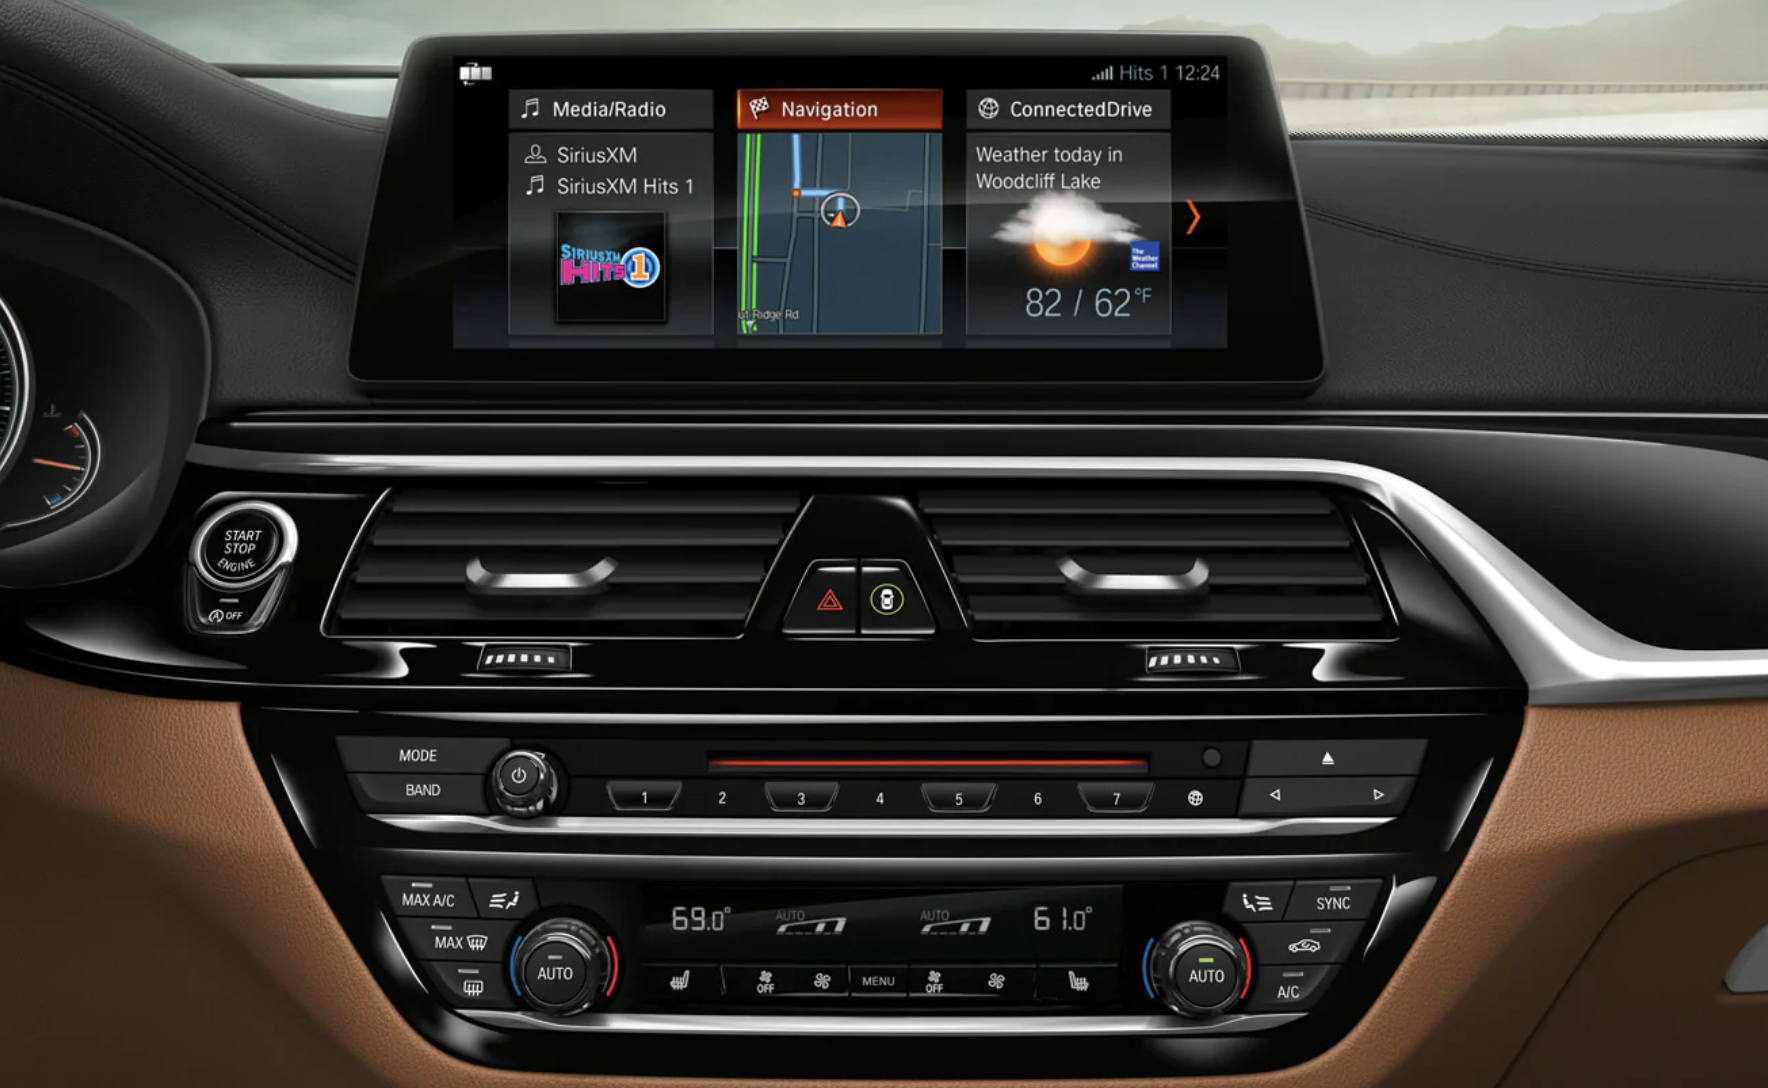 An interior picture showing the iDrive feature of the BMW 6 Series.